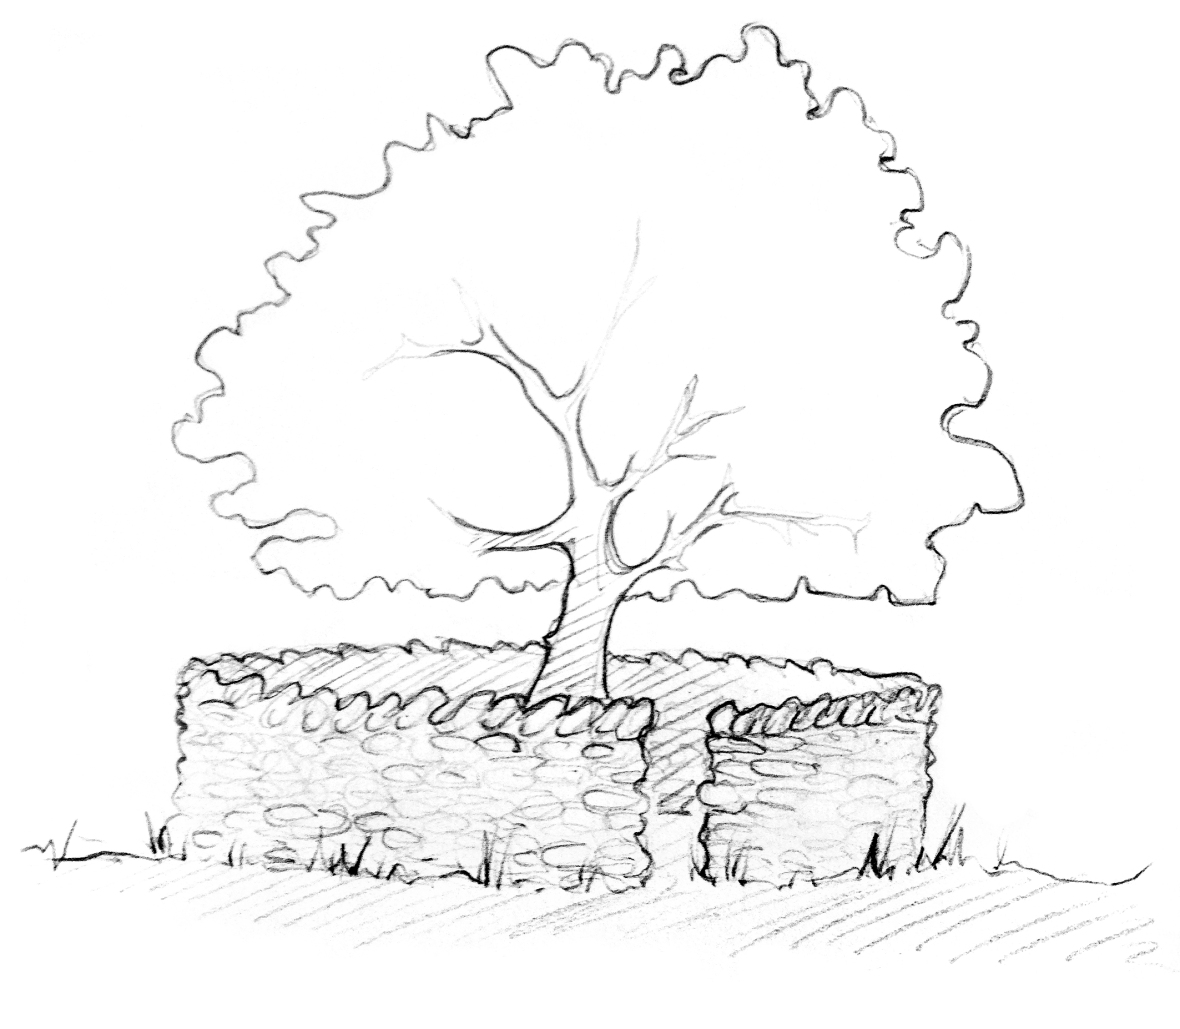 artists impression of the Treefold, once the tree has become established.